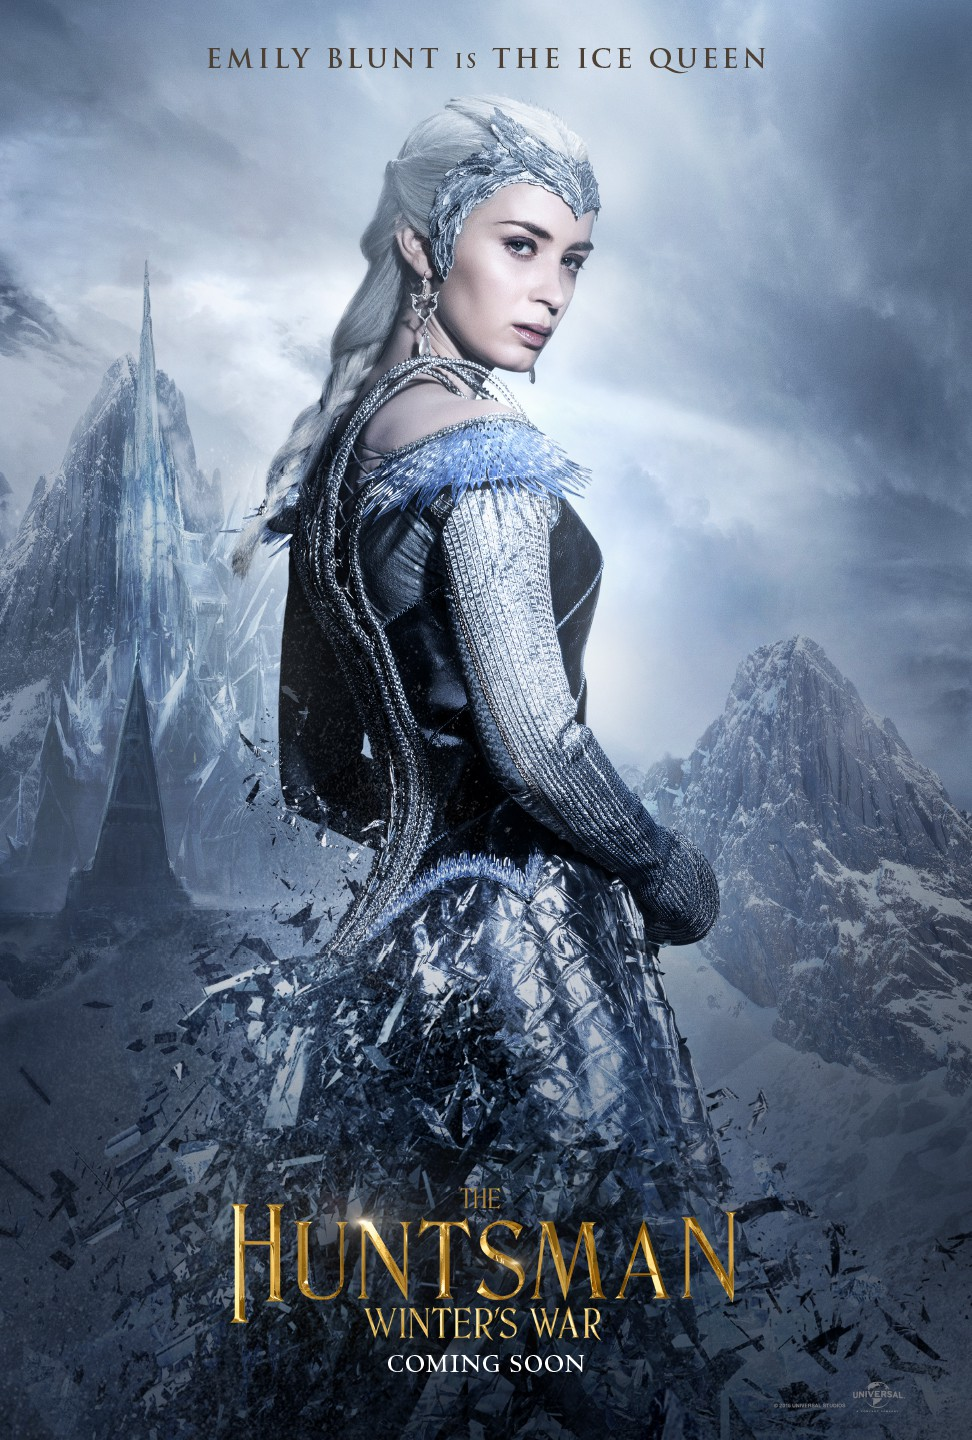 The Huntsman Winter's War: Ice Queen